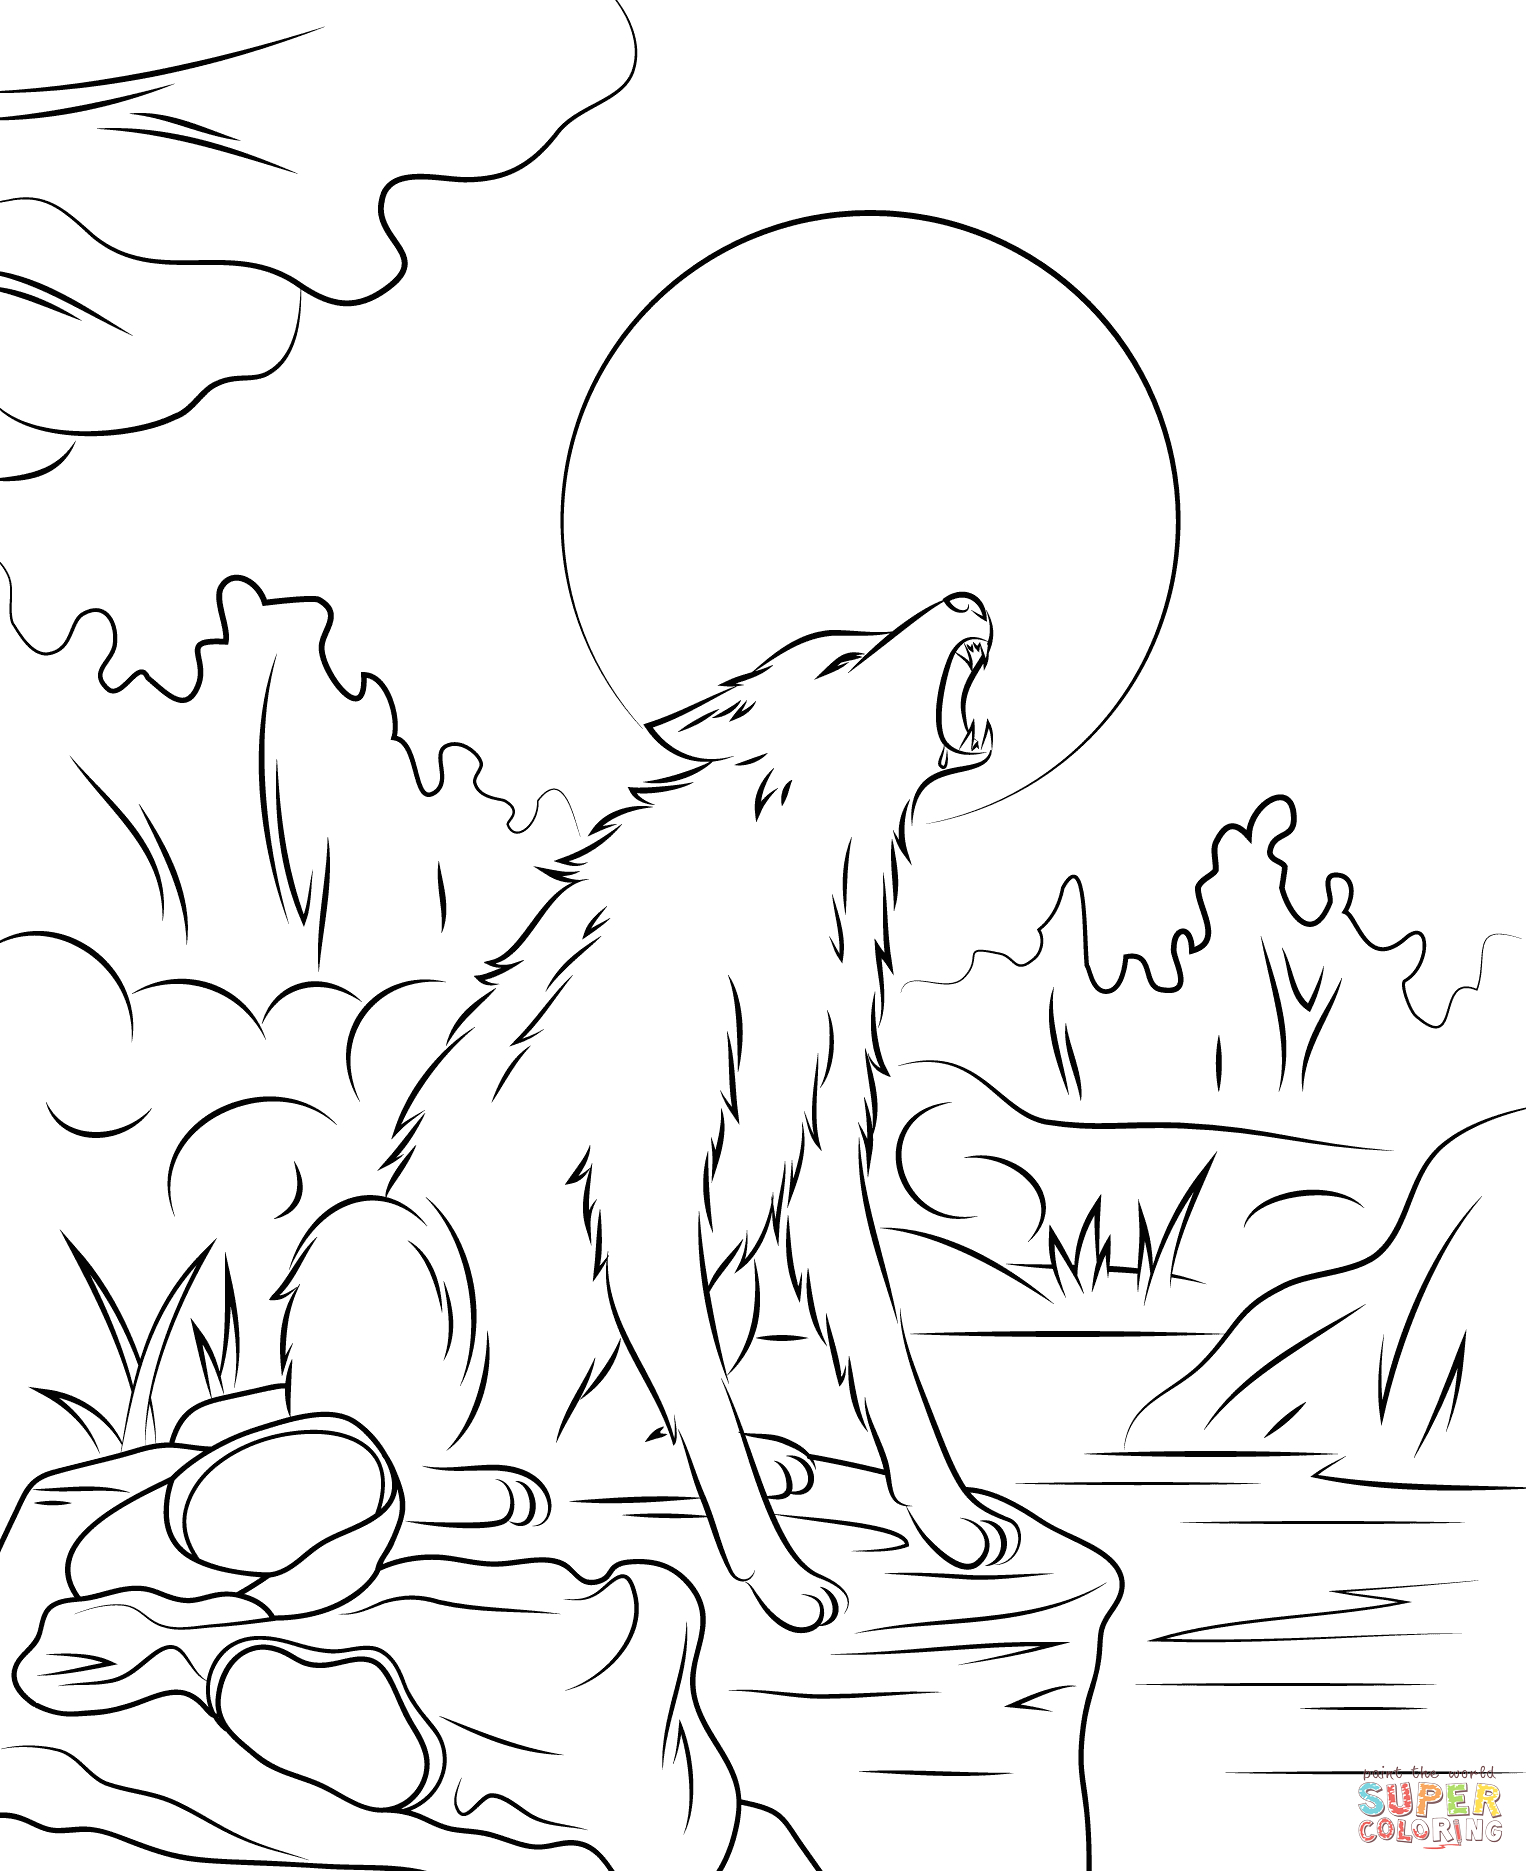 wolf howling at the moon drawing step by step